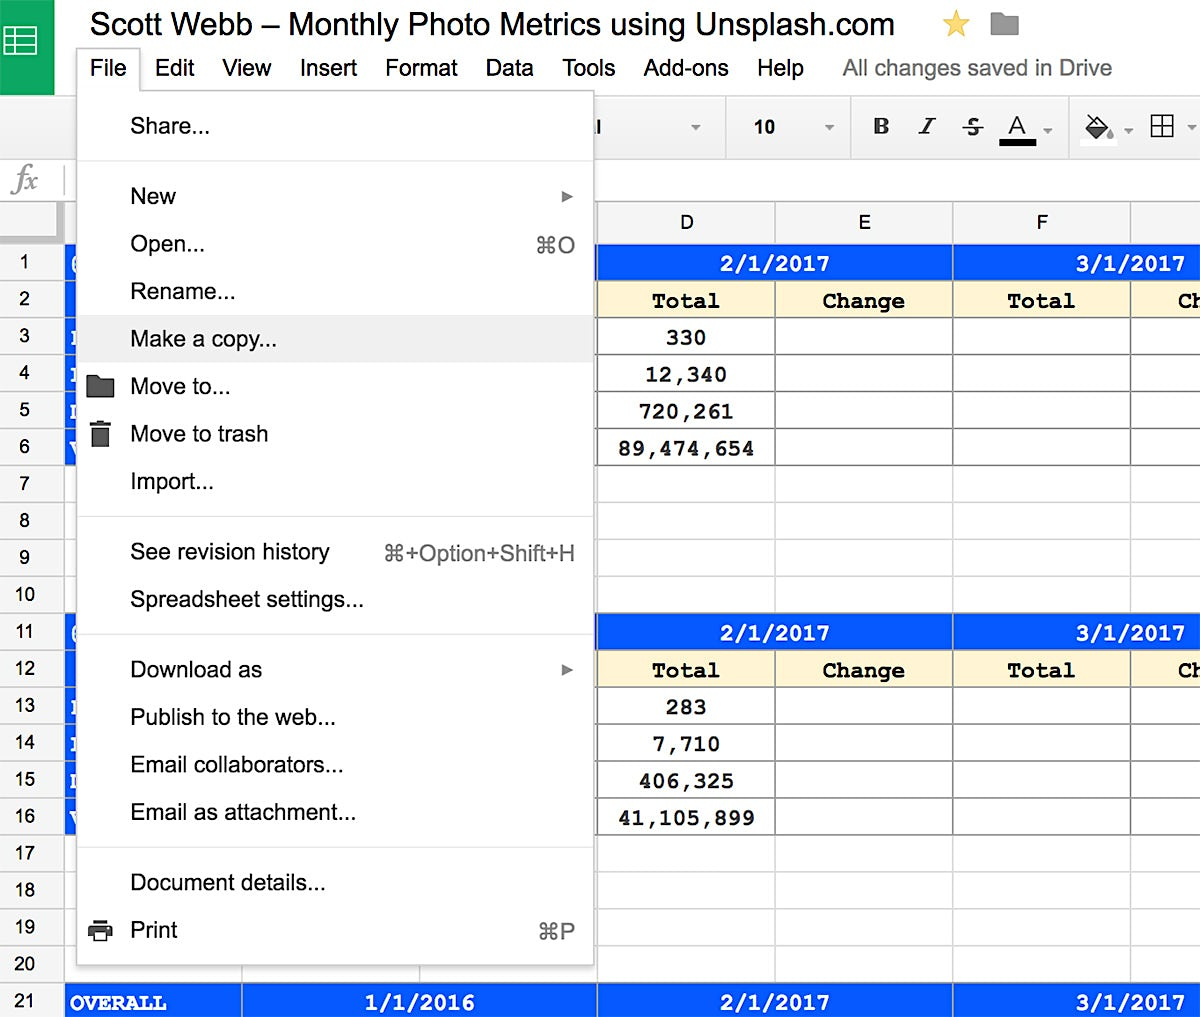 How to make a copy of spreadsheet to track your stats on Unsplash in 2017